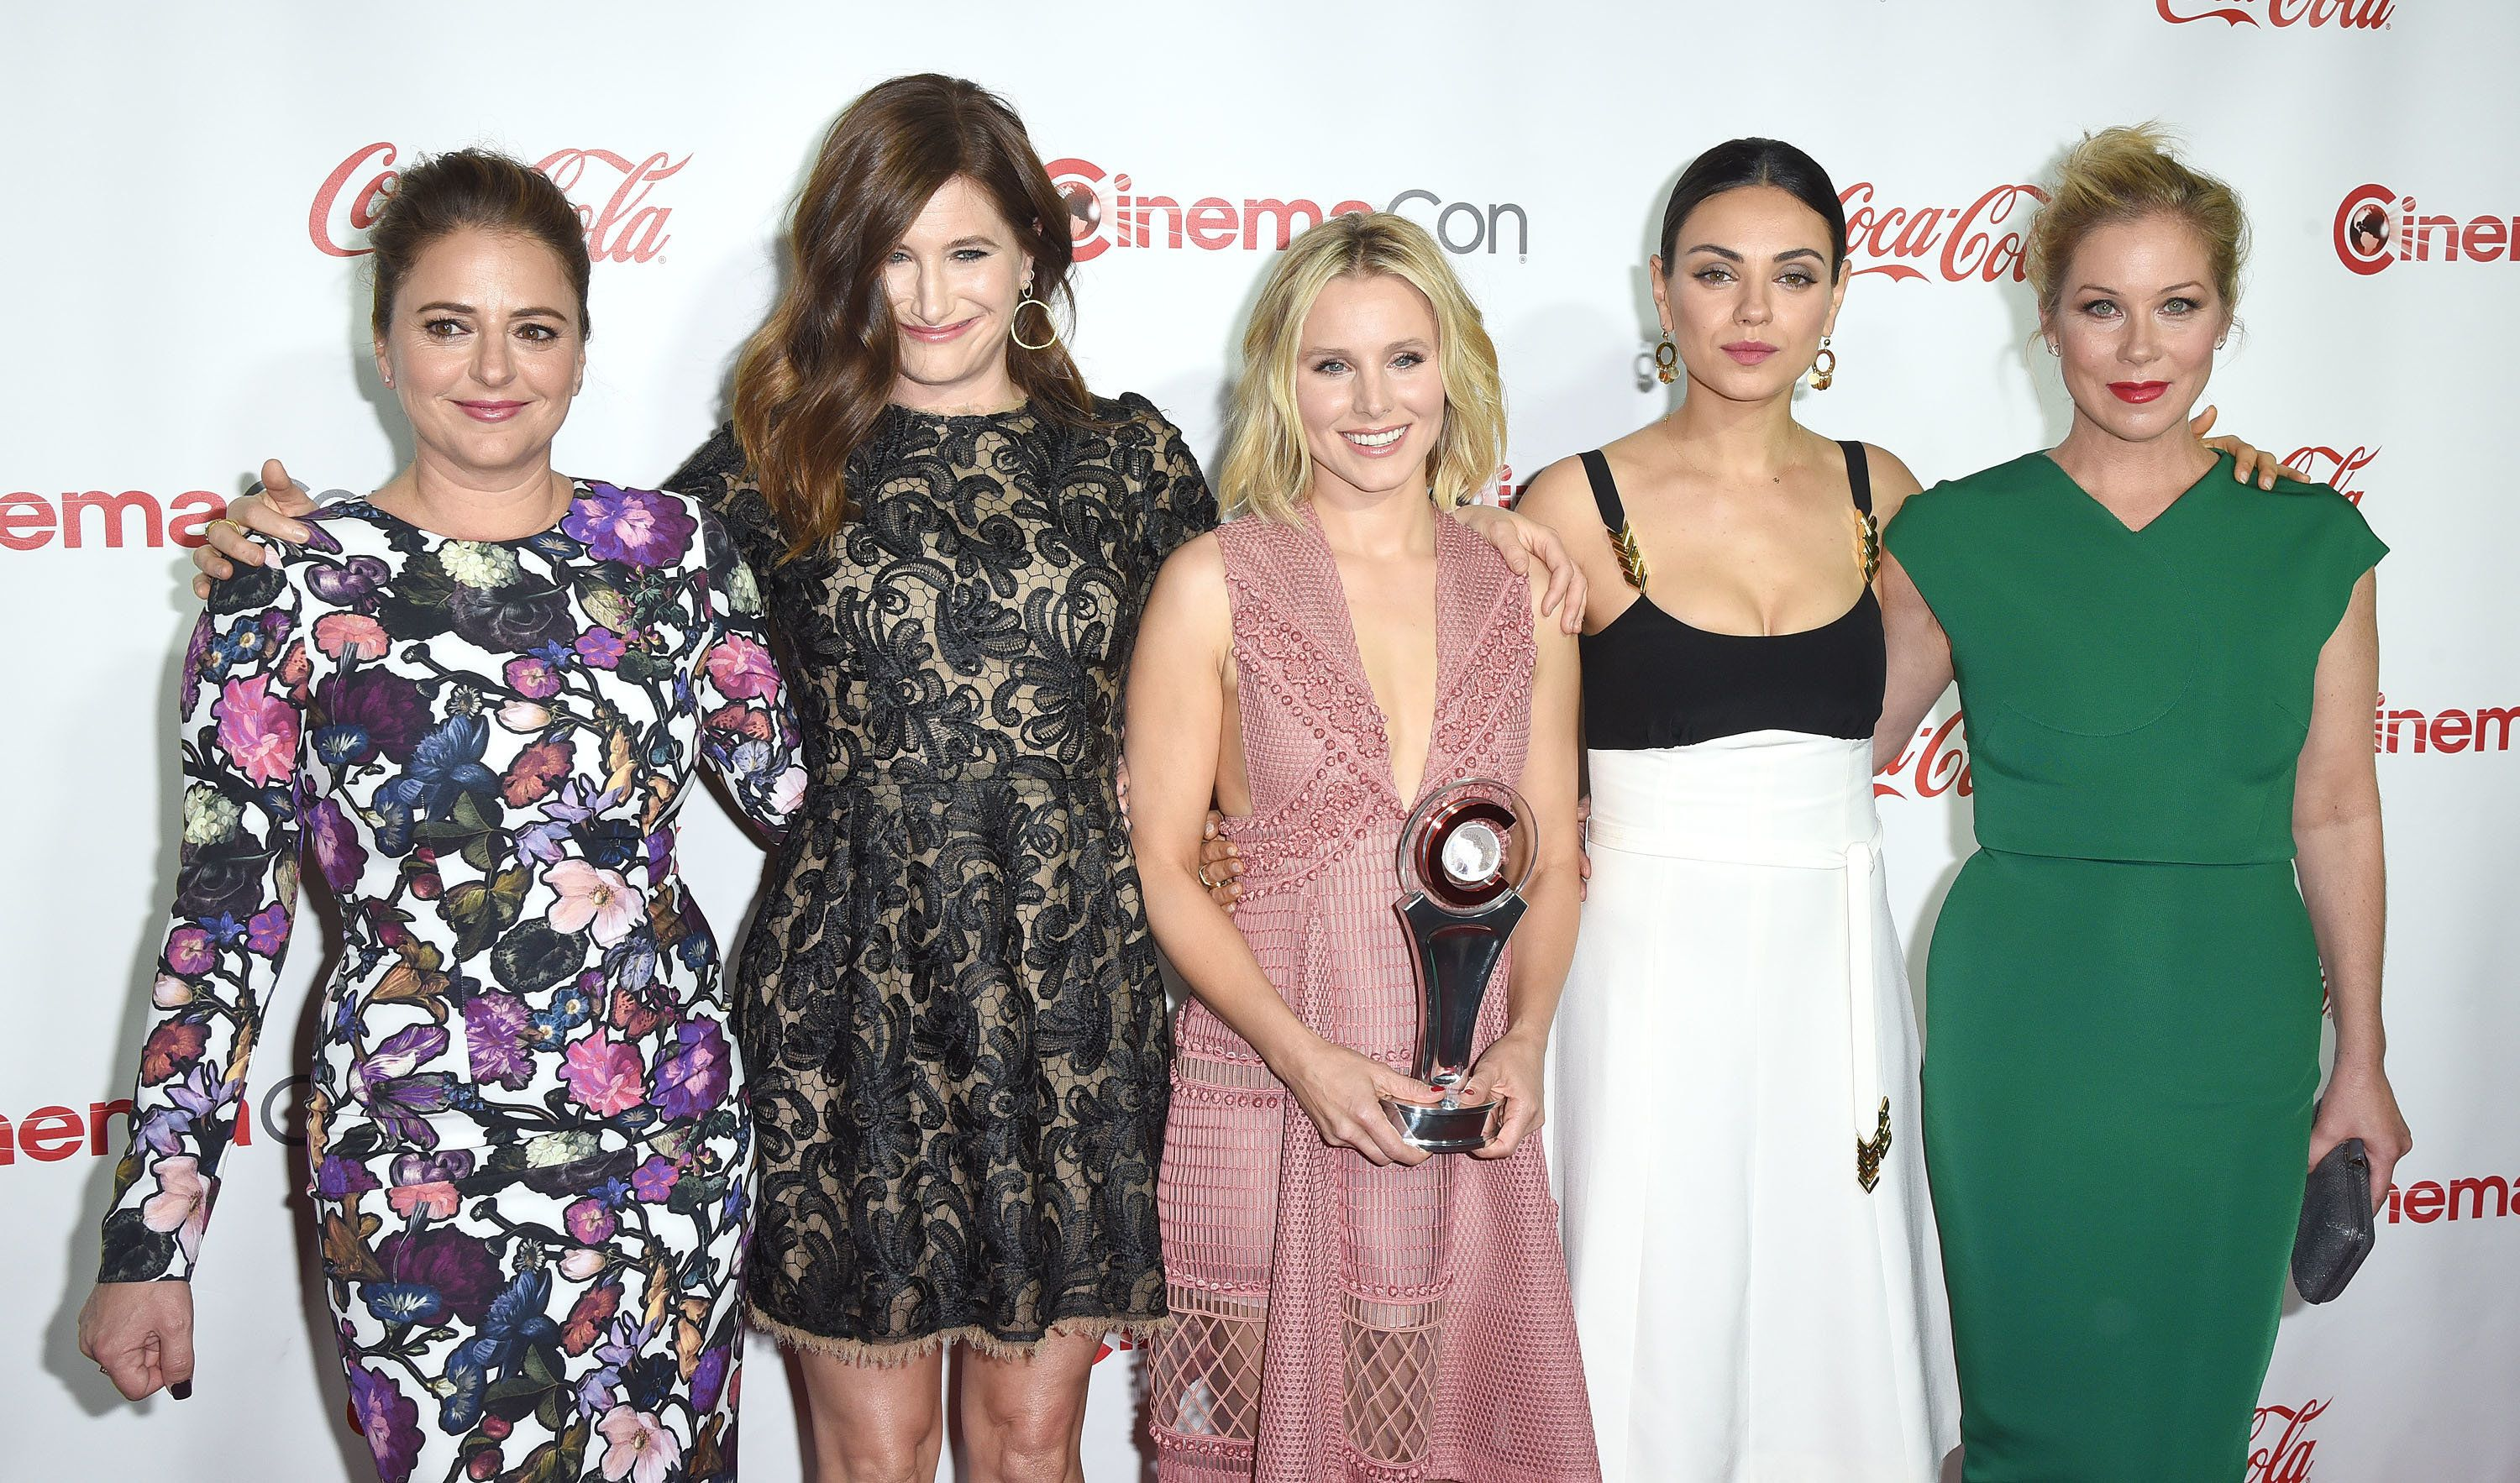 LAS VEGAS, NV - APRIL 14:  (L-R) Actress/screenwriter Annie Mumolo and actresses Kathryn Hahn, Kristen Bell, Mila Kunis and Christina Applegate, recipients of the Female Stars of the Year Award, attend the CinemaCon Big Screen Achievement Awards brought to you by the Coca-Cola Company at Omnia Nightclub at Caesars Palace during CinemaCon, the official convention of the National Association of Theatre Owners, on April 14, 2016 in Las Vegas, Nevada.  (Photo by C Flanigan/Getty Images)